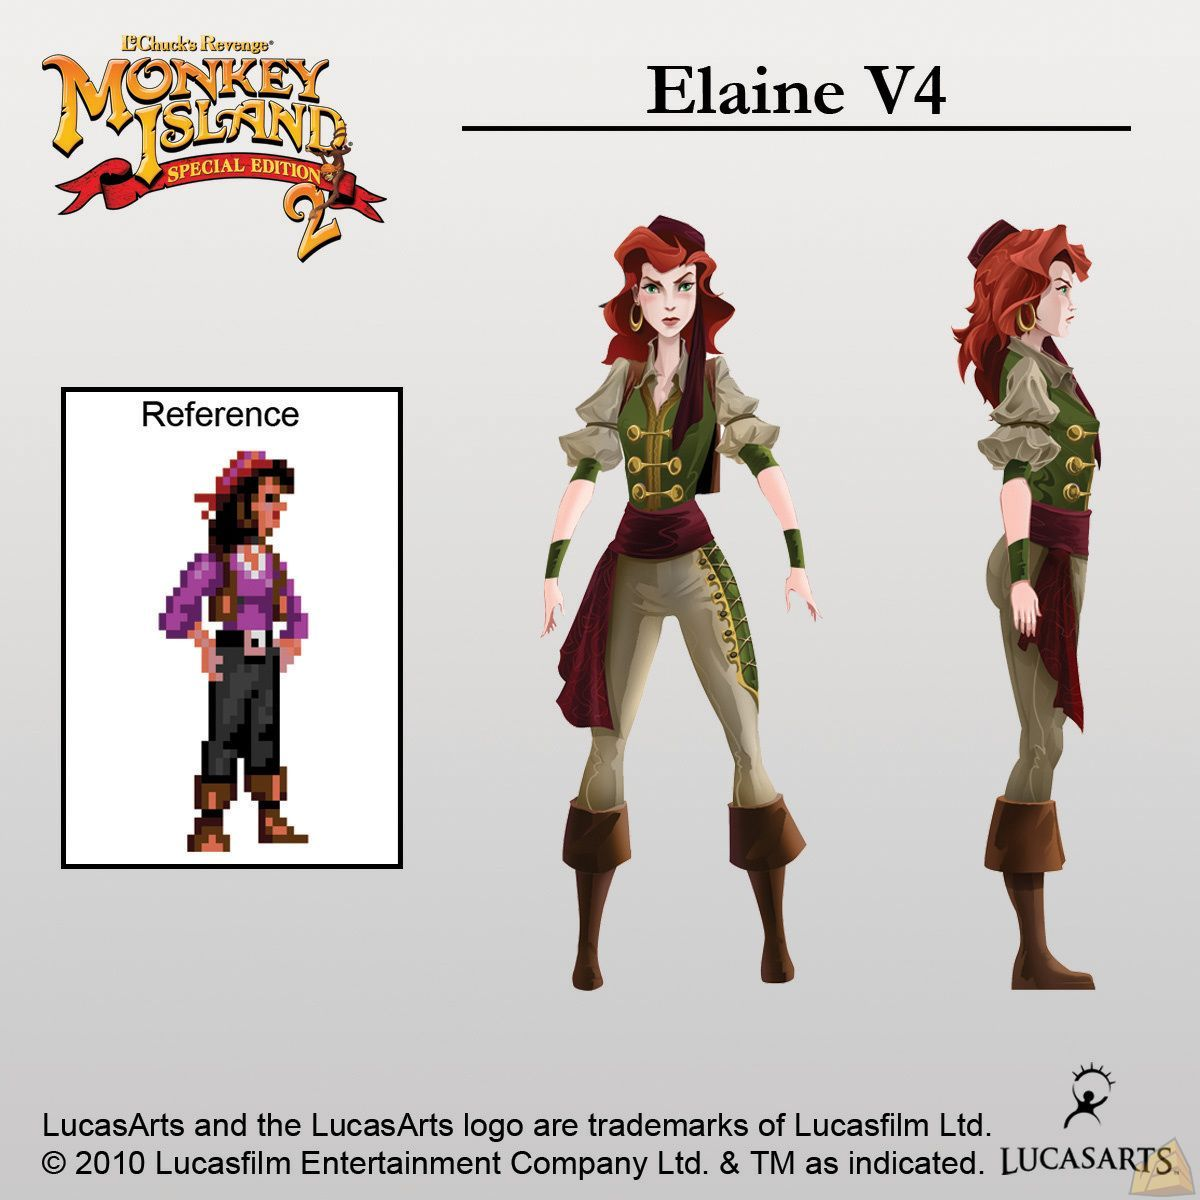 Monkey island 2 lechuck s revenge concept art the international - Find This Pin And More On Monkey Island Elaine From Monkey Island 2 Monkey Island 2 Special Edition Lechuck S Revenge Art